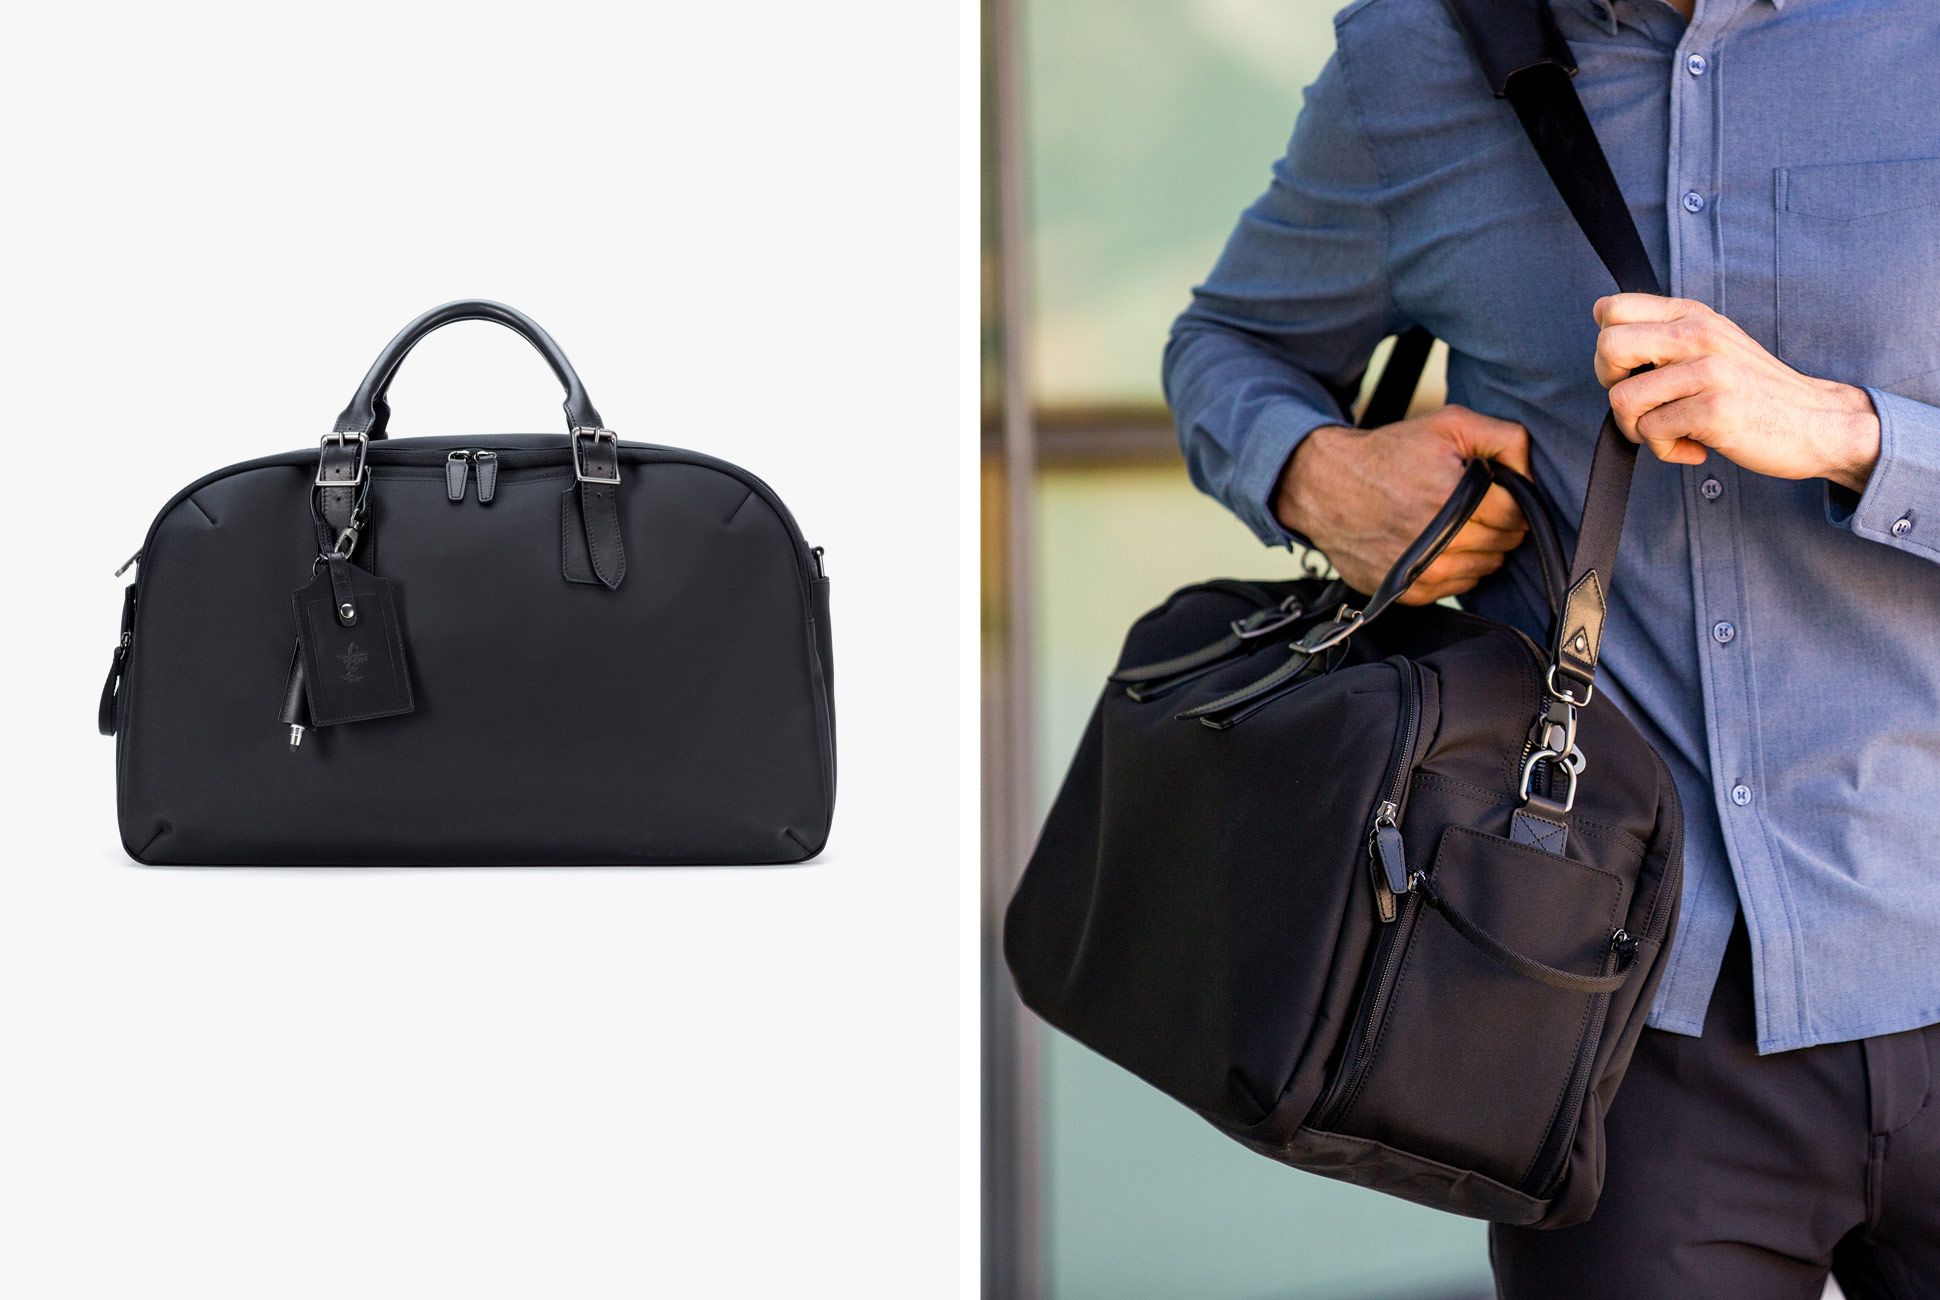 Stuart   Lau s Gym Bag is All You Need and is  95 Off • Gear Patrol e4556eaac2636